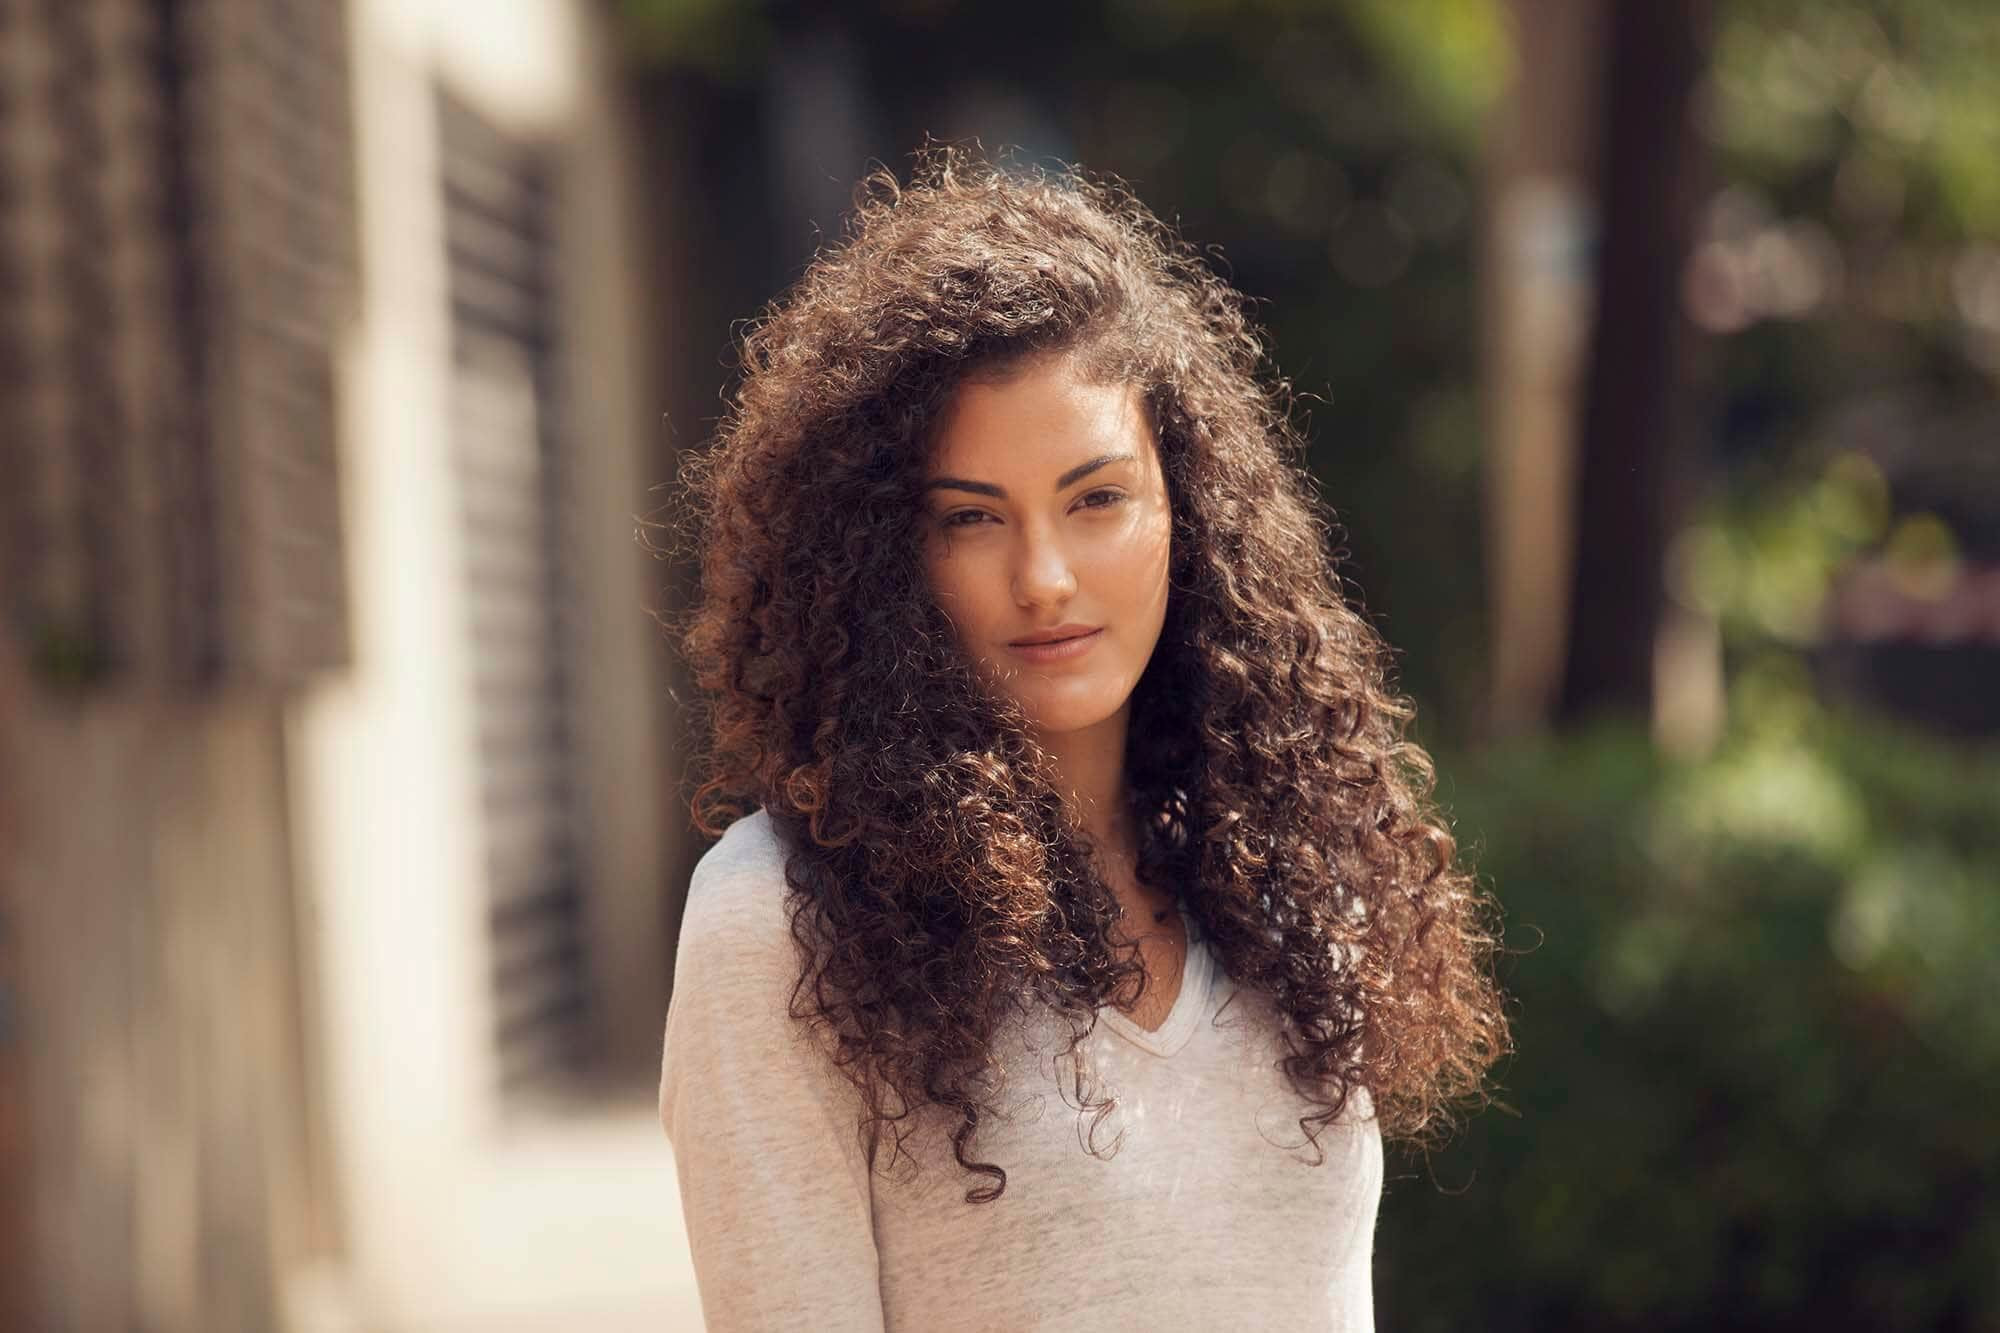 Best ideas about Hairstyle For Thick Curly Frizzy Hair . Save or Pin 16 Easy and Modern Hairstyles for Thick Curly Hair Now.